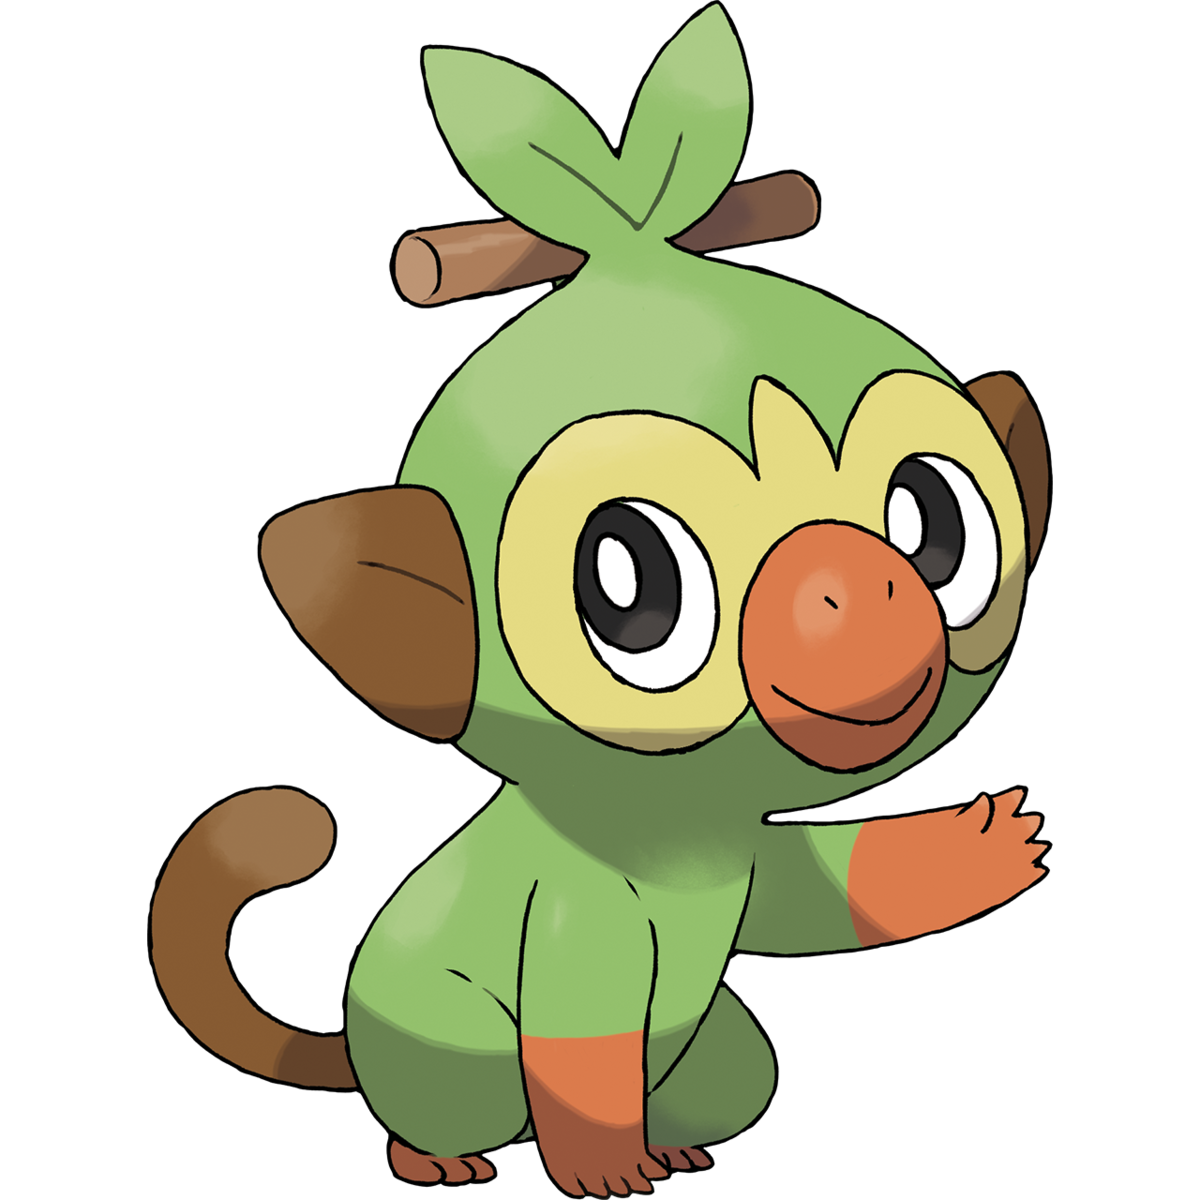 Discuss Everything About Pokemon Wiki Fandom My first skin i upload to pmc, i hope you guys enjoy this look inspired by the new pok mon grooky. wiki fandom